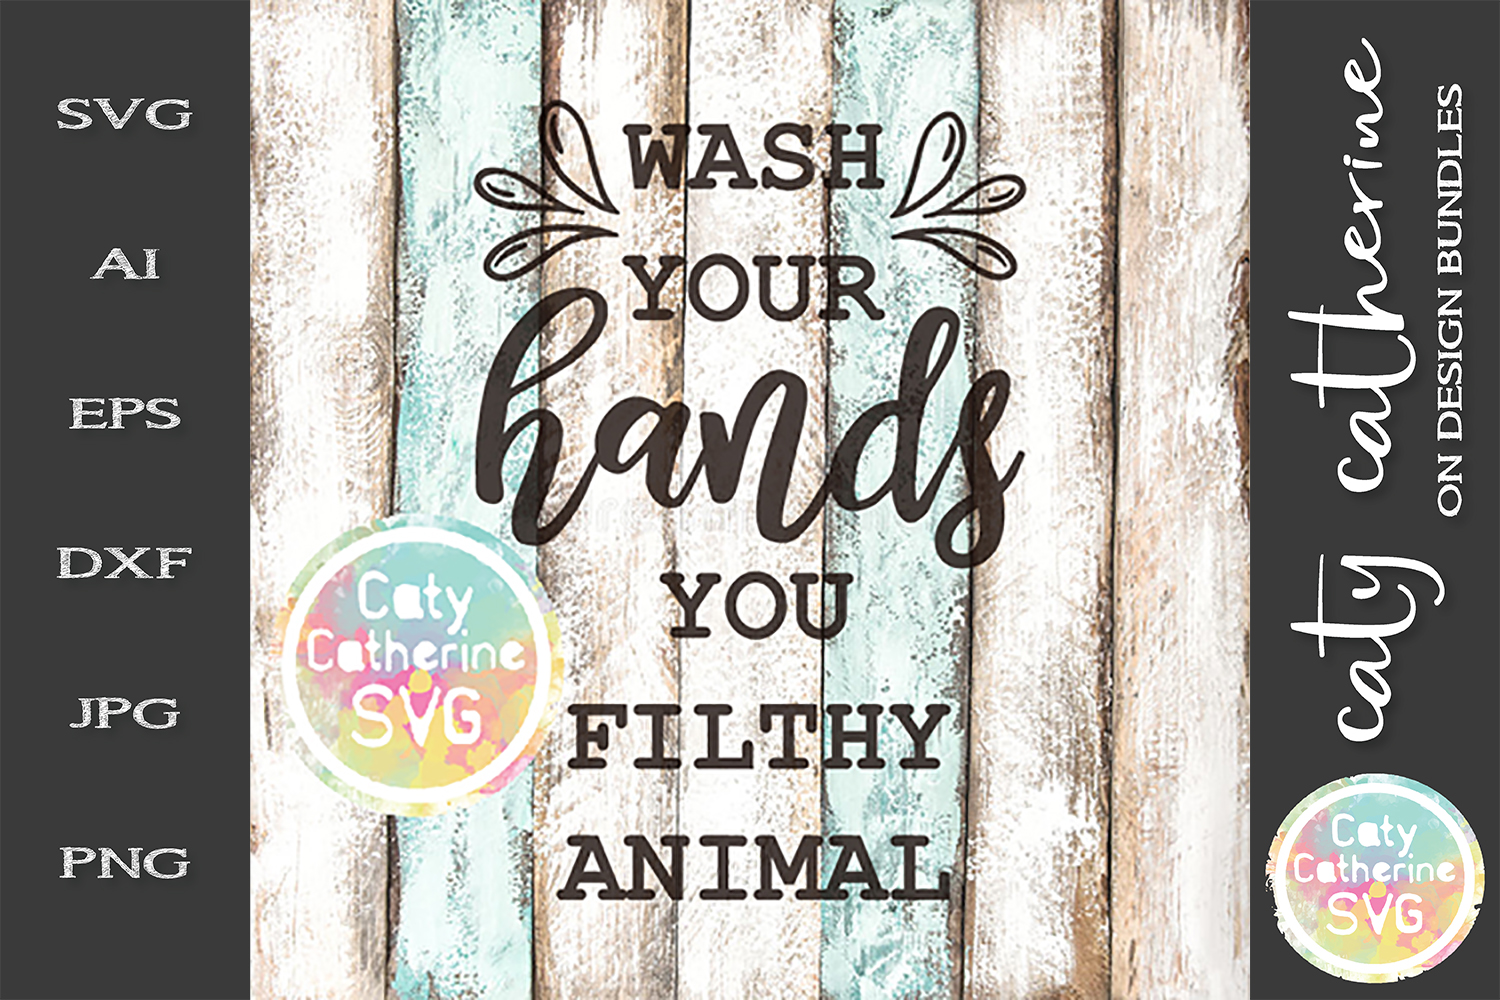 Wash Your Hands You Filthy Animal SVG Cut File example image 1